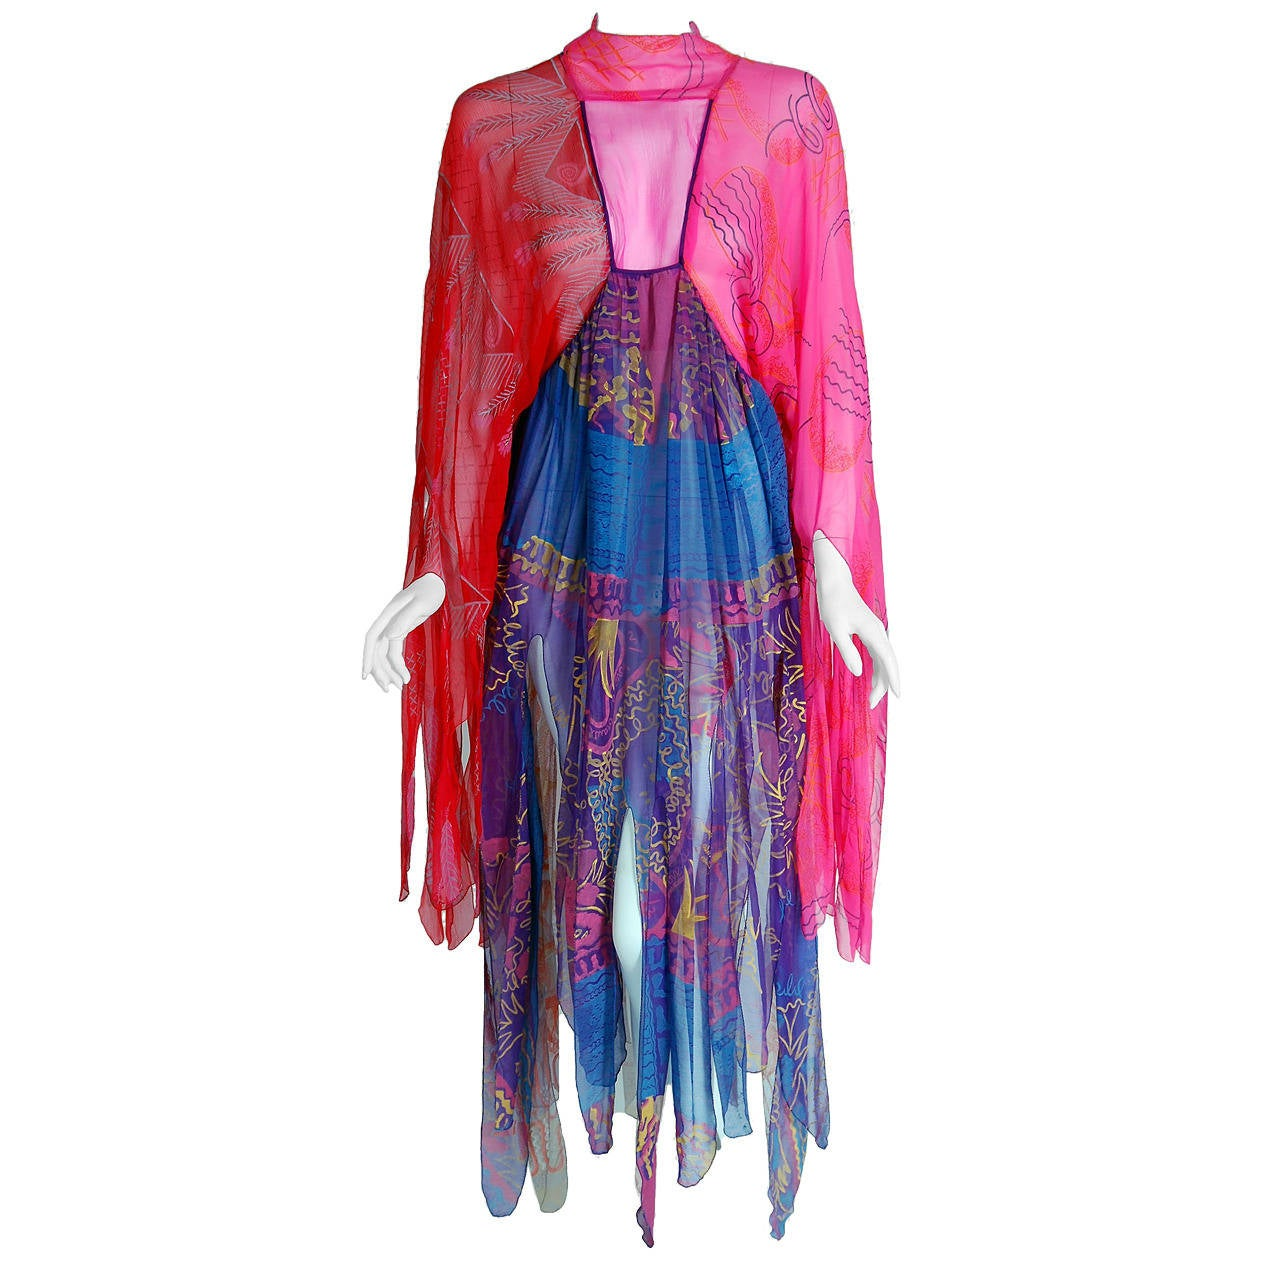 1972 Zandra Rhodes Hand-Painted Indian Feathers & Lillies Silk Caftan Dress For Sale